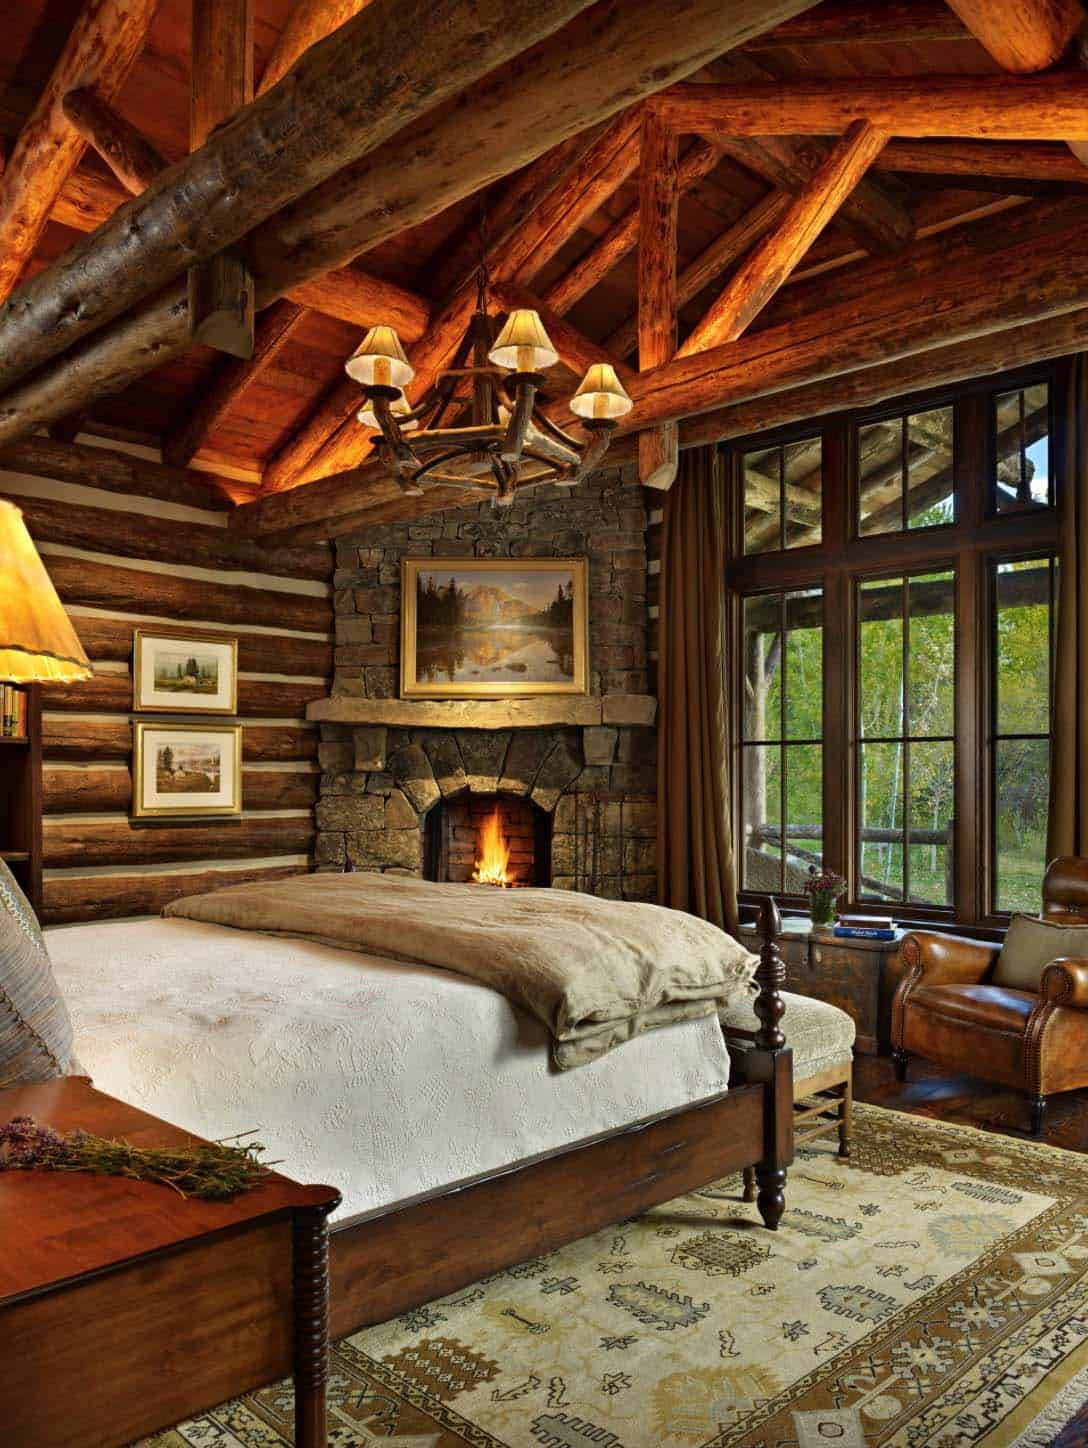 Rustic Romantic Bedroom Ideas: 40 Amazing Rustic Bedrooms Styled To Feel Like A Cozy Getaway